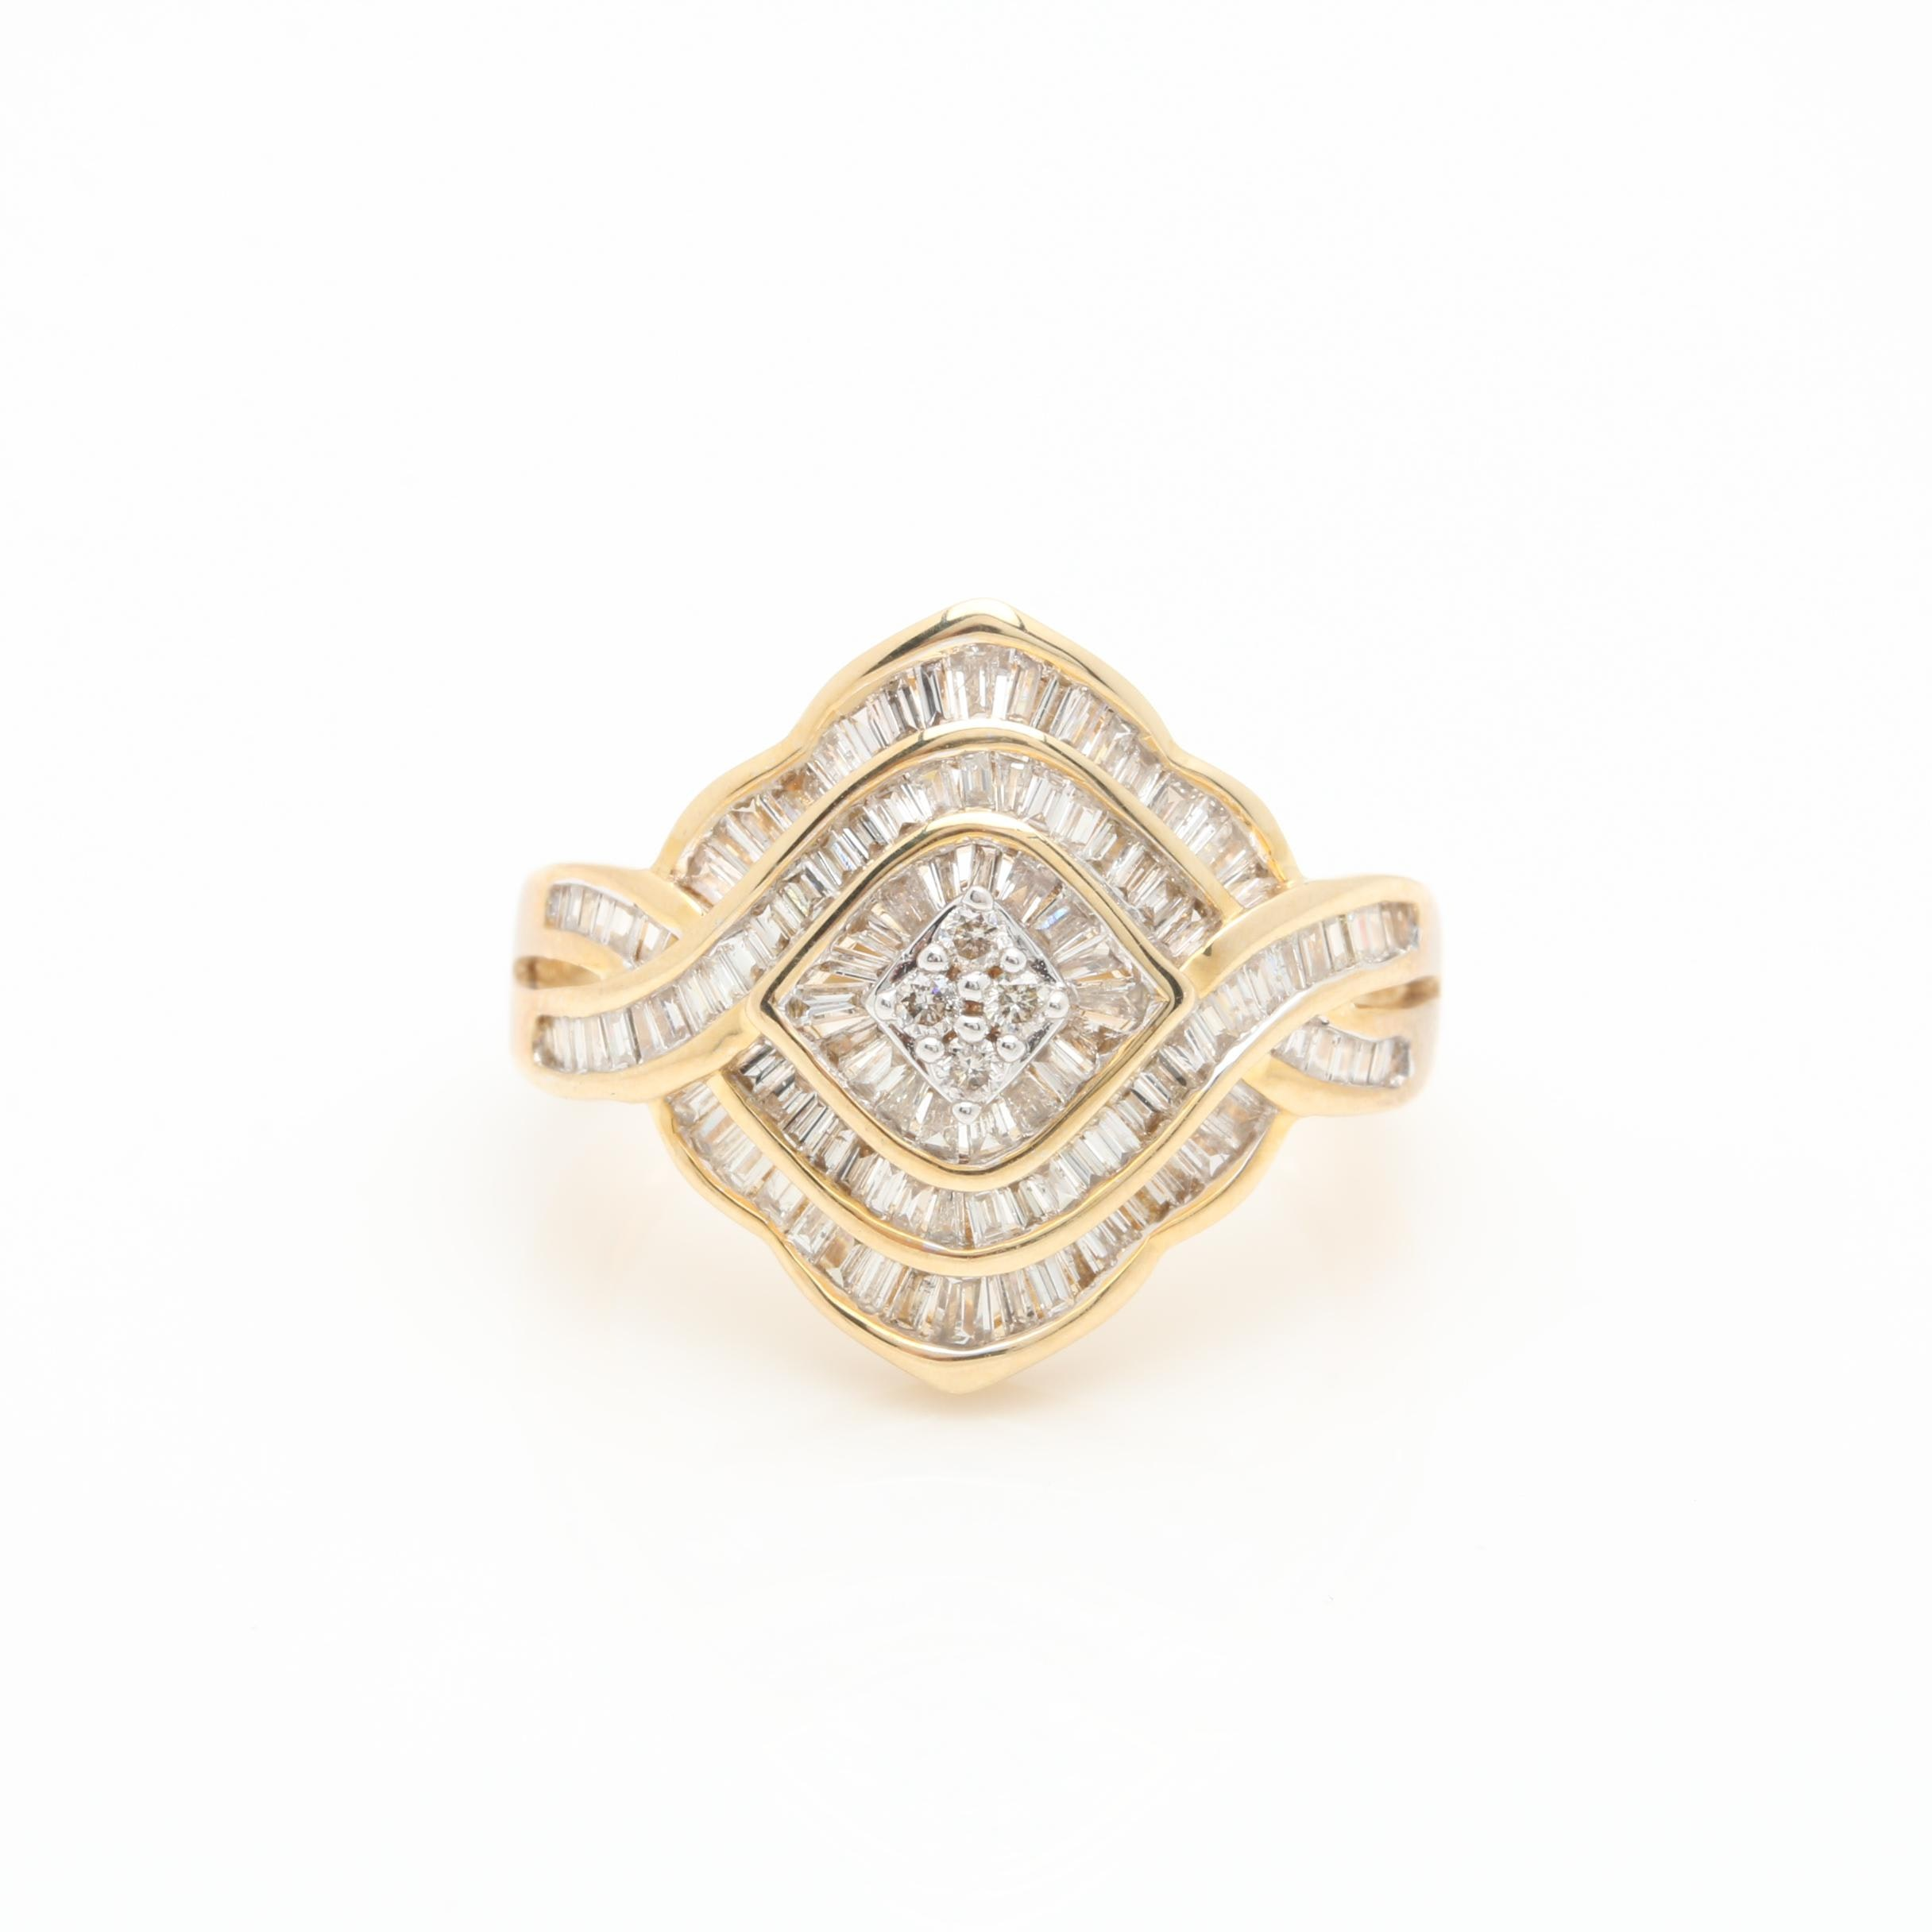 10K Yellow Gold 1.22 CTW Diamond Ring